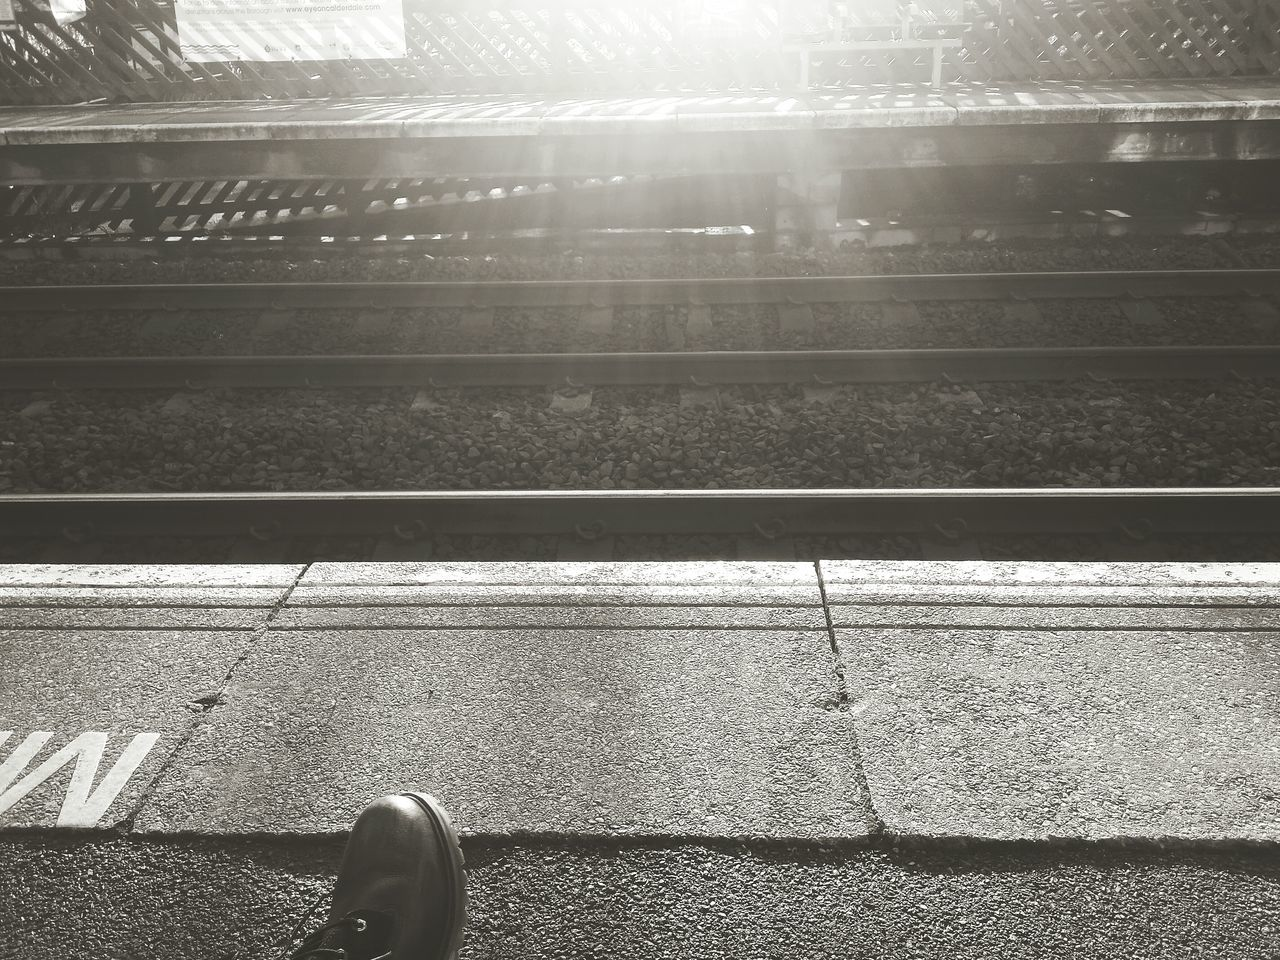 Monochrome Monochromatic Monochrome_life Waiting Portraits Black And White Portrait Train Station Black & White Black And White New Years Resolutions 2016 Christmas Around The World December Geometric Shapes Light And Shadow Glare Floortraits Train Tracks Tracks Platform Train Platform Boot Sat Down Feet Commuting Freelance Life